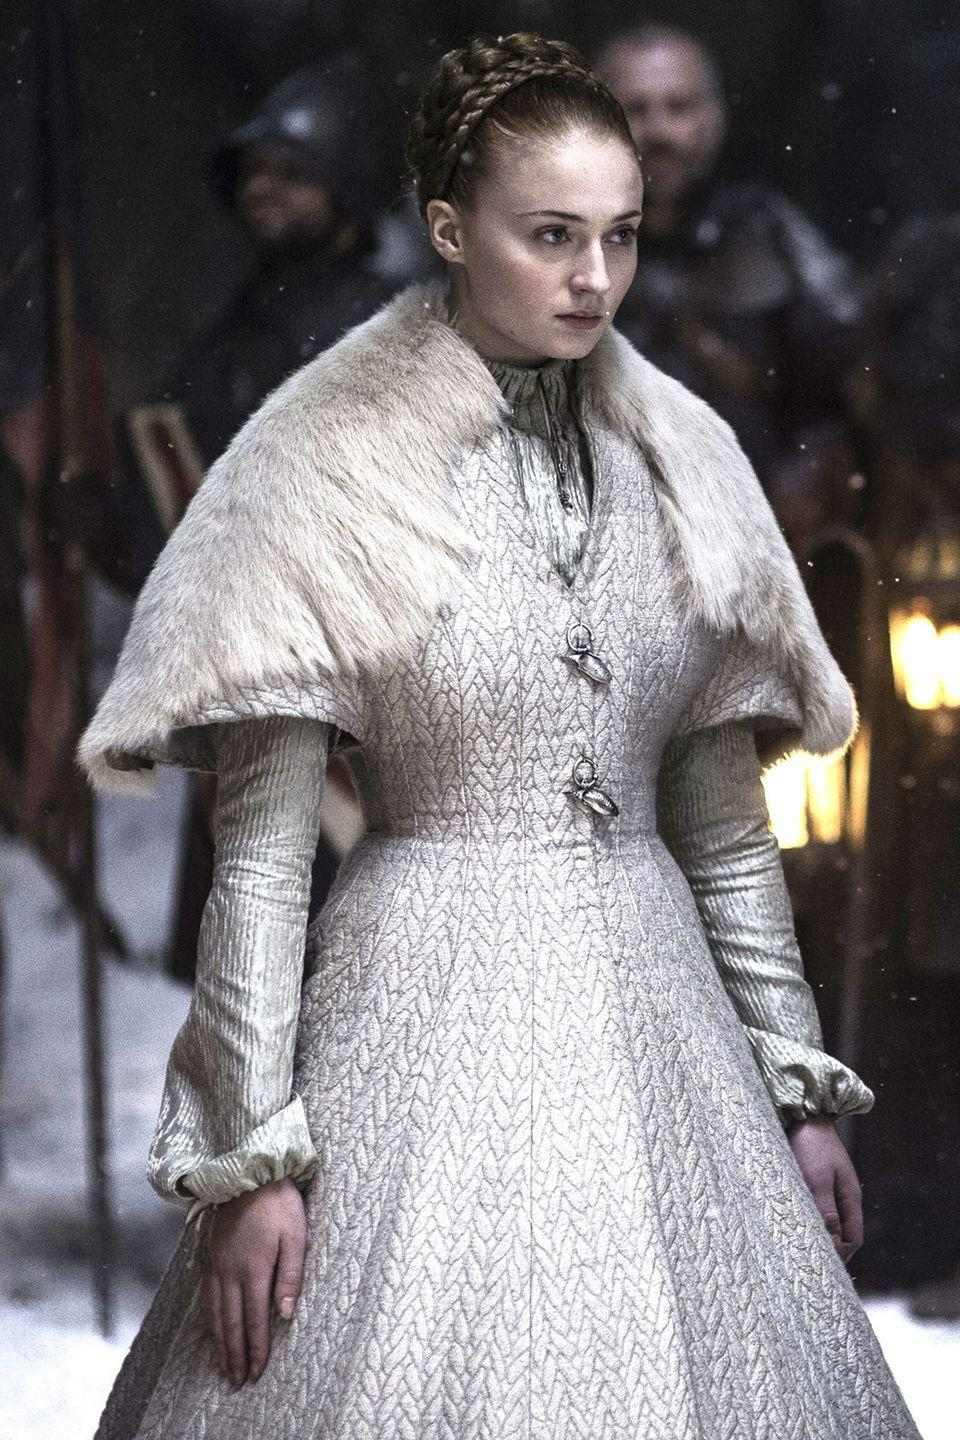 <p>Sansa's wedding ended horribly, but before viewers were left permanently scarred at the end of the season 5 episode, she walked down a snowy aisle in this winter wedding dress. It featured a fur shawl on top of a thick, quilted dress and long sleeves. </p>